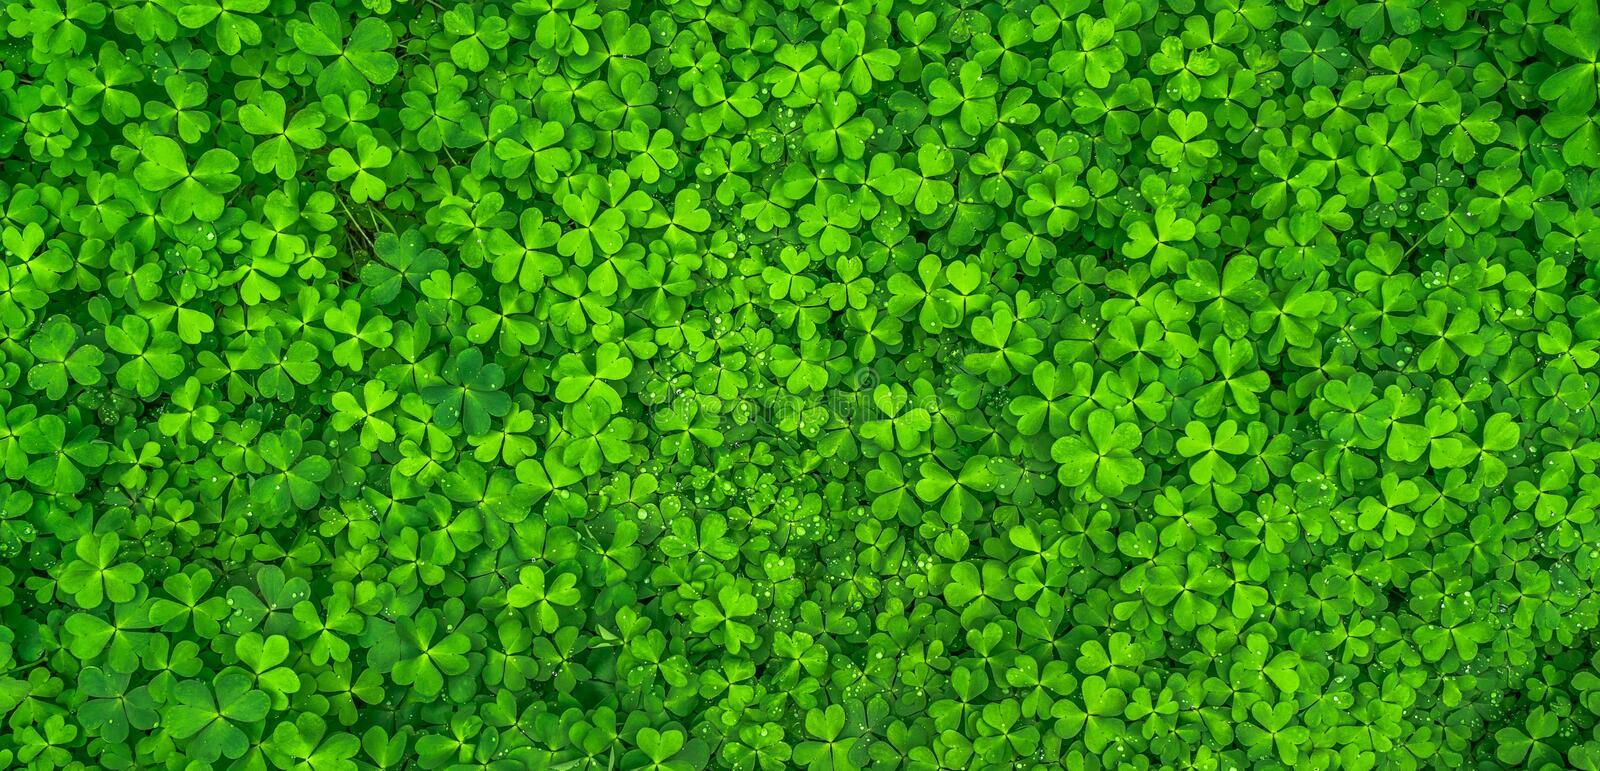 Top View Photo Of Clover Leaves Free Public Domain Cc0 Image